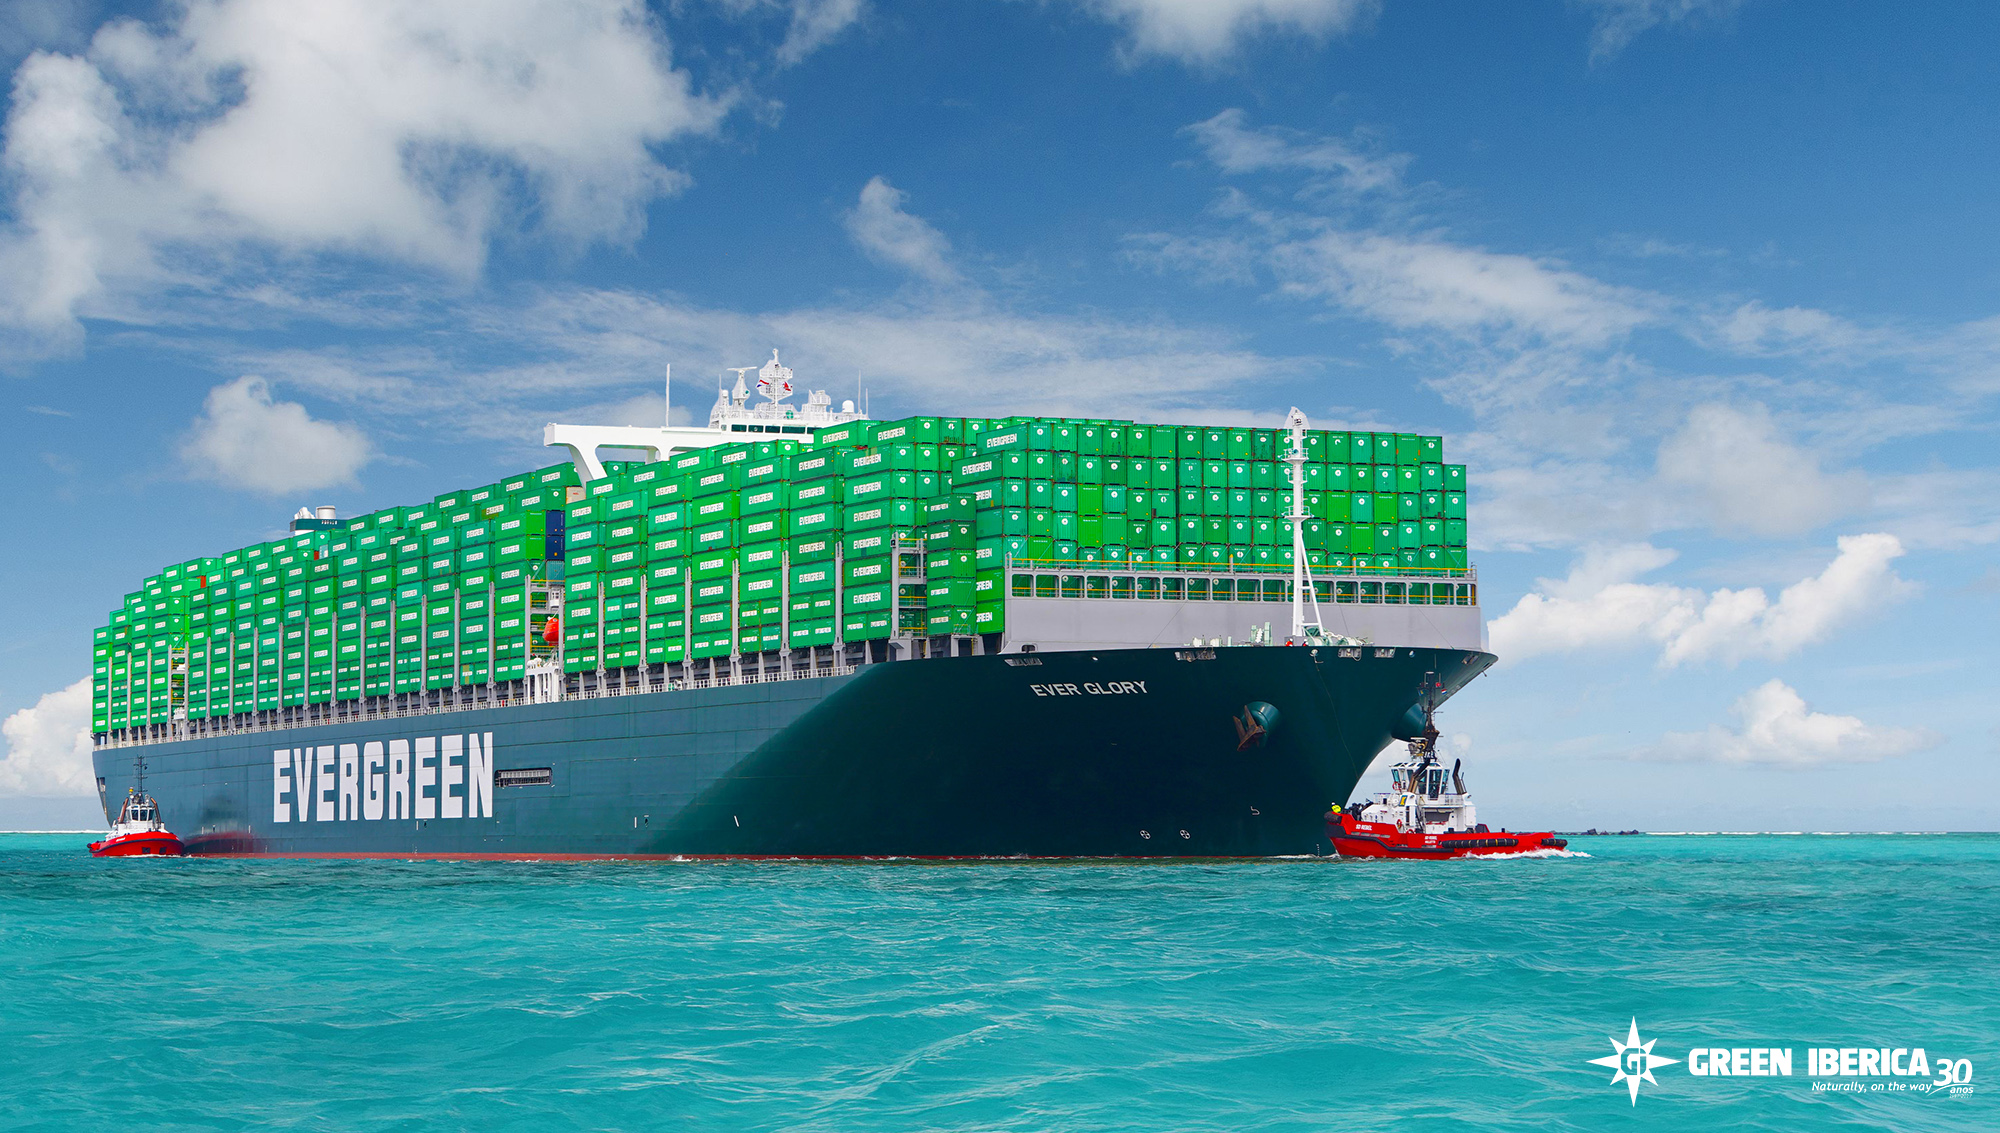 Ever Glory Ship, Evergreen, Green Ibérica